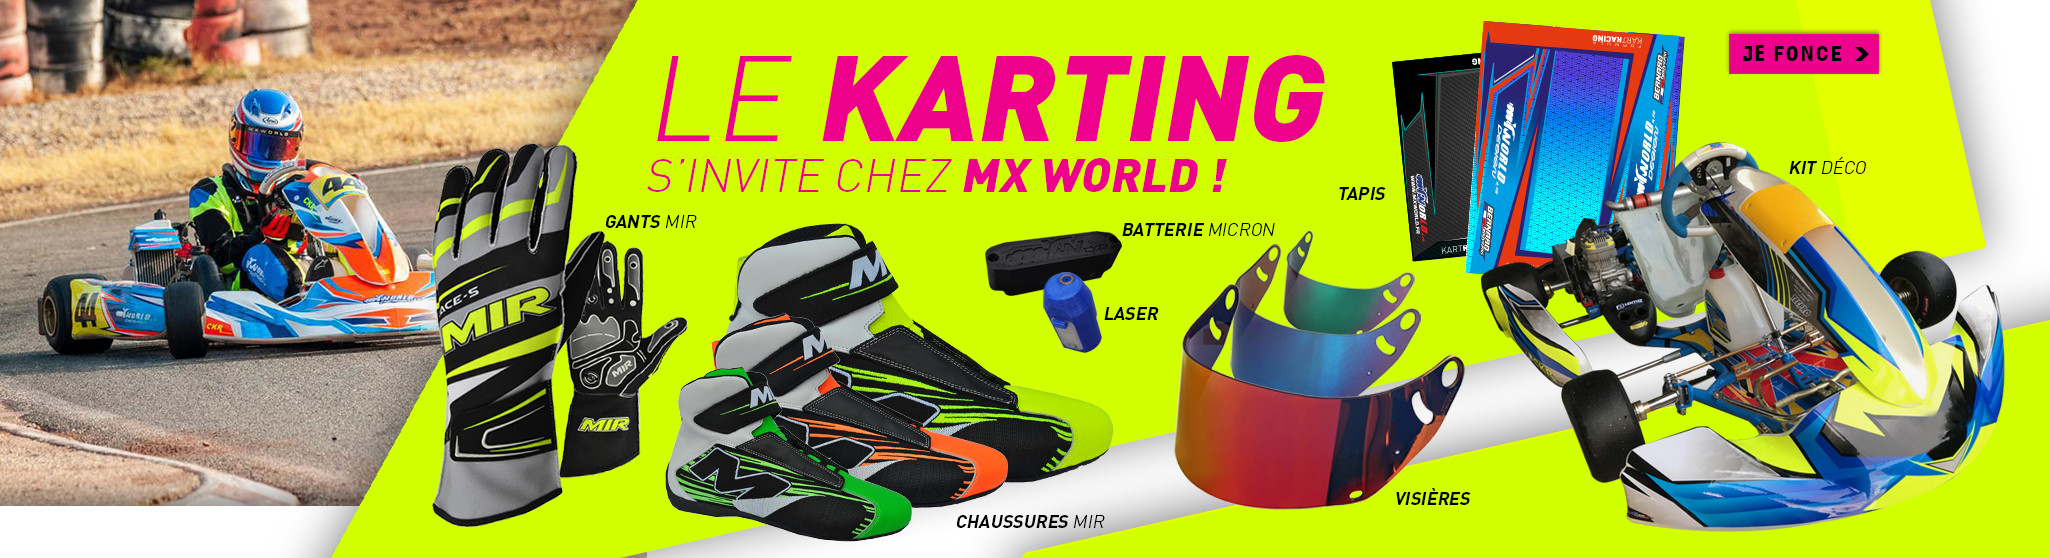 Le Karting s'invite chez MxWorld